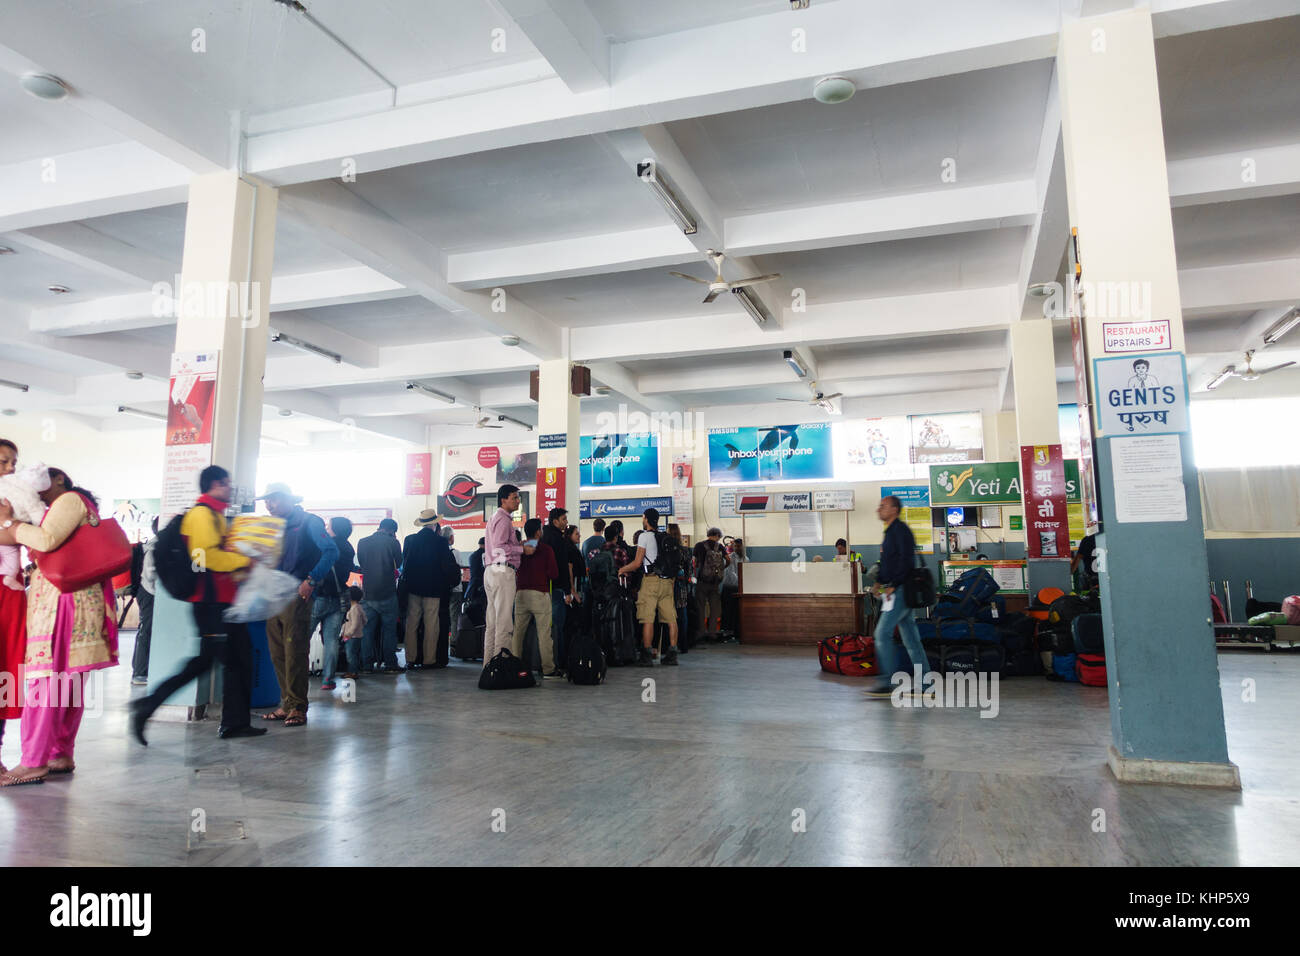 POKHARA, NEPAL - CIRCA NOVEMBER 2017: People are queuing to check in at Pokhara airport. - Stock Image